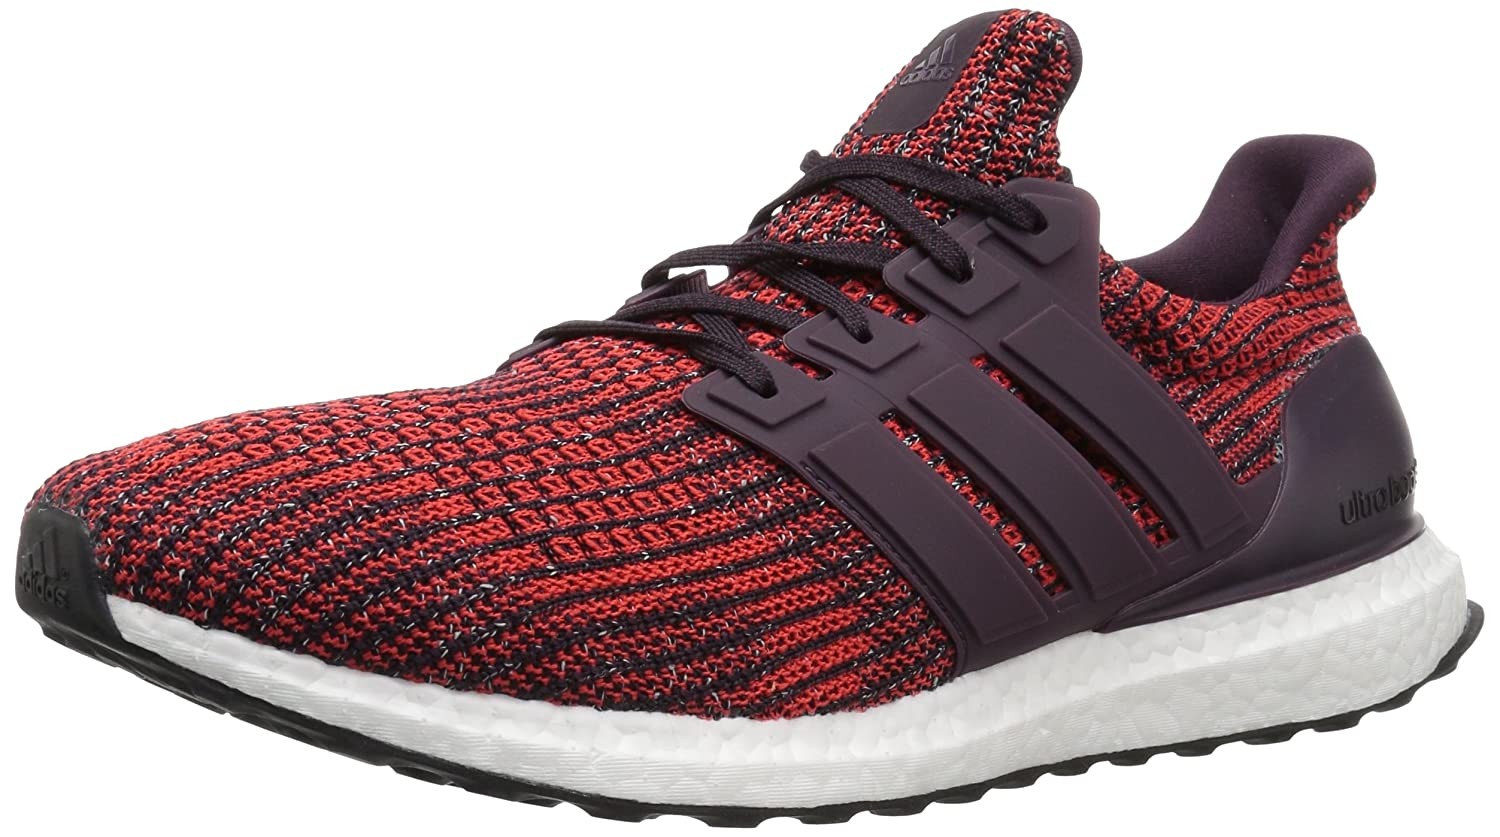 adidas Men's Ultraboost Road Running Shoe B0719HP4Y1 4.5 D(M) US|Noble Red/Noble Red/Black